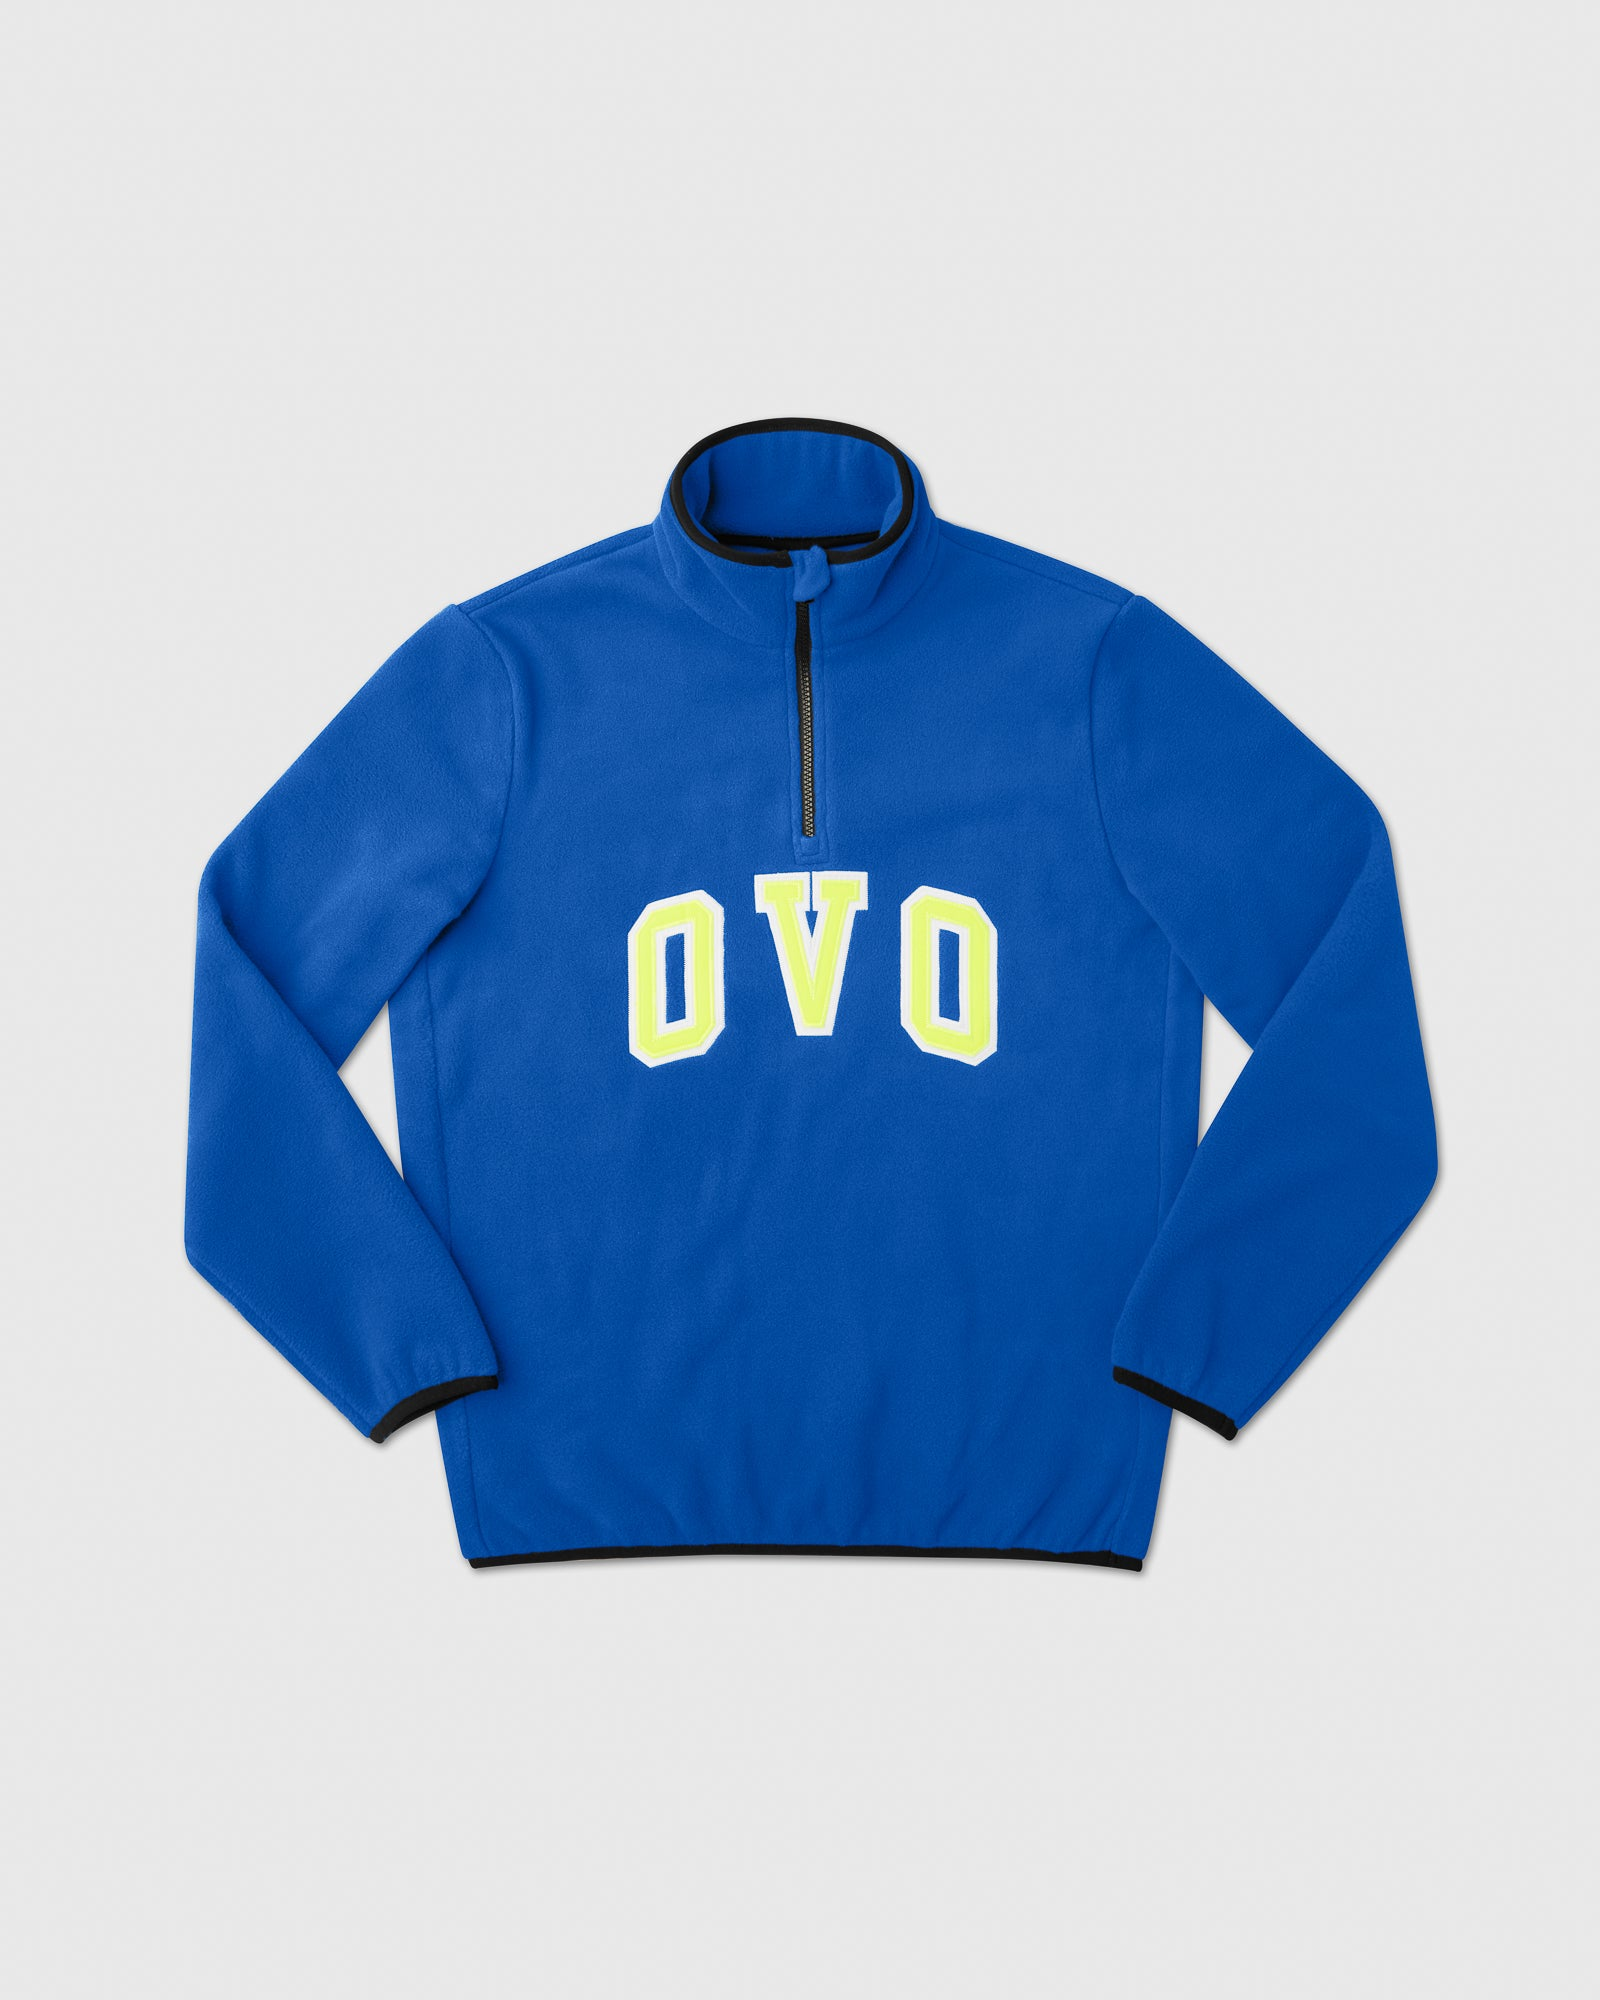 OVO ARCH POLAR FLEECE HALF ZIP - ROYAL BLUE IMAGE #1